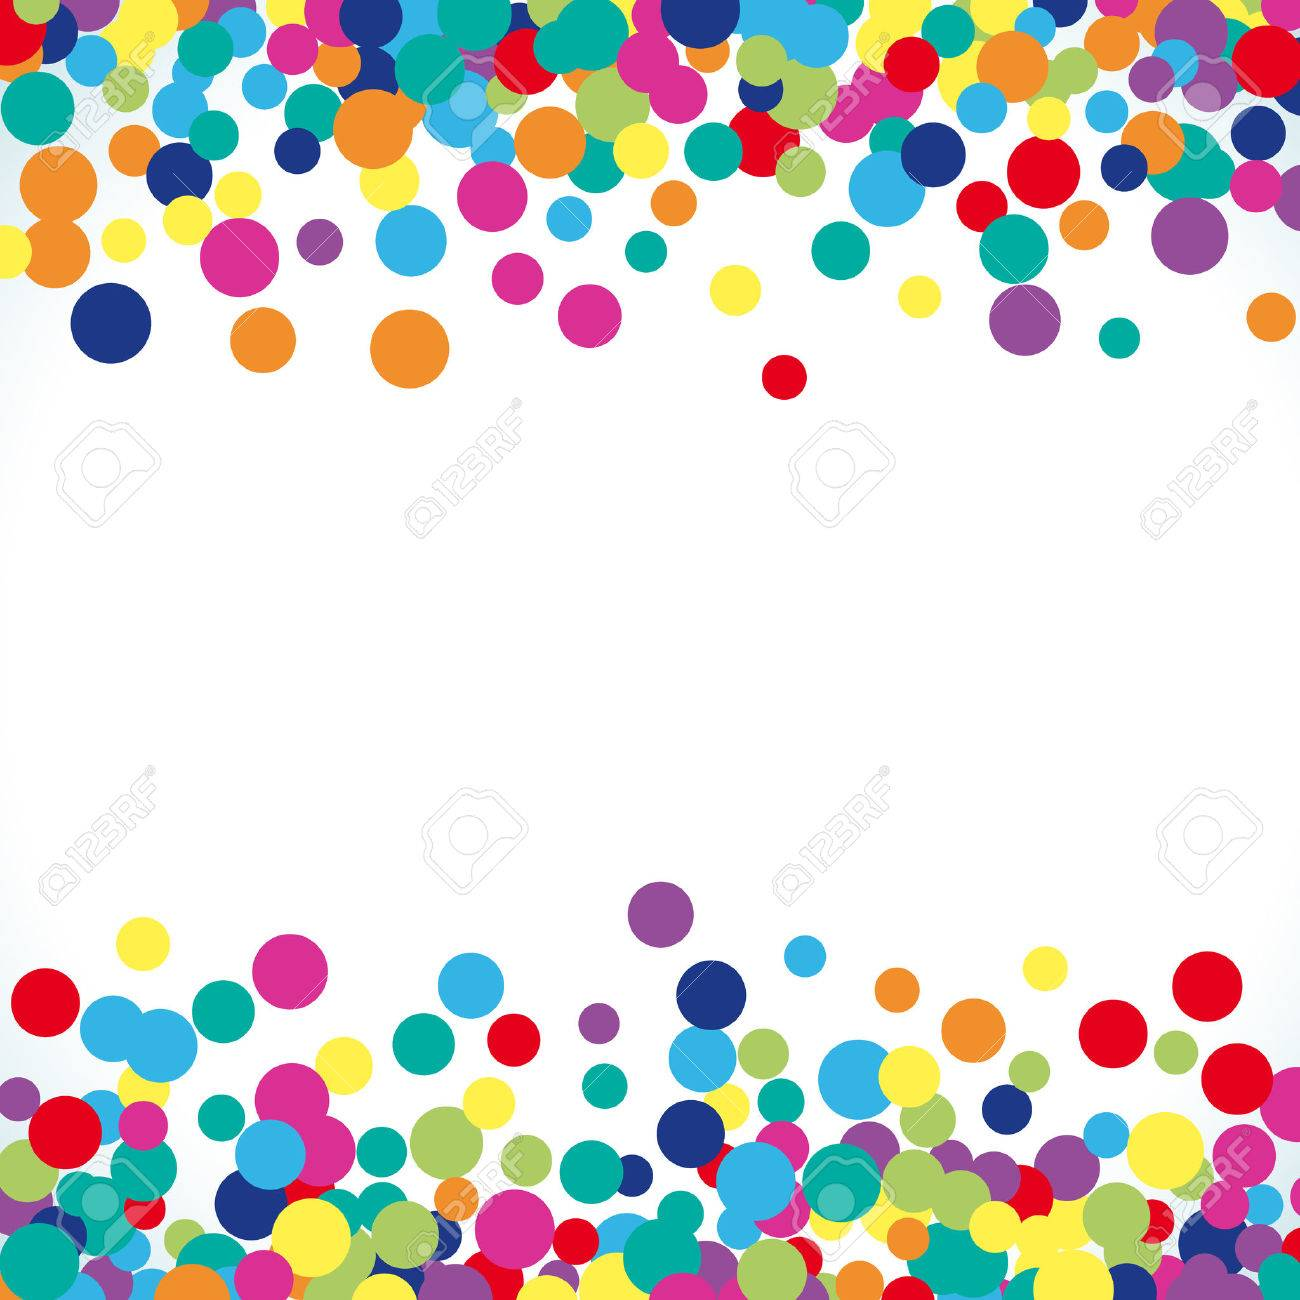 Colorful abstract dot background. illustration for bright design. Circle art round backdrop. Modern pattern decoration. Color texture holiday element wallpaper. Decor fun spot card. Happy mood. - 57583903